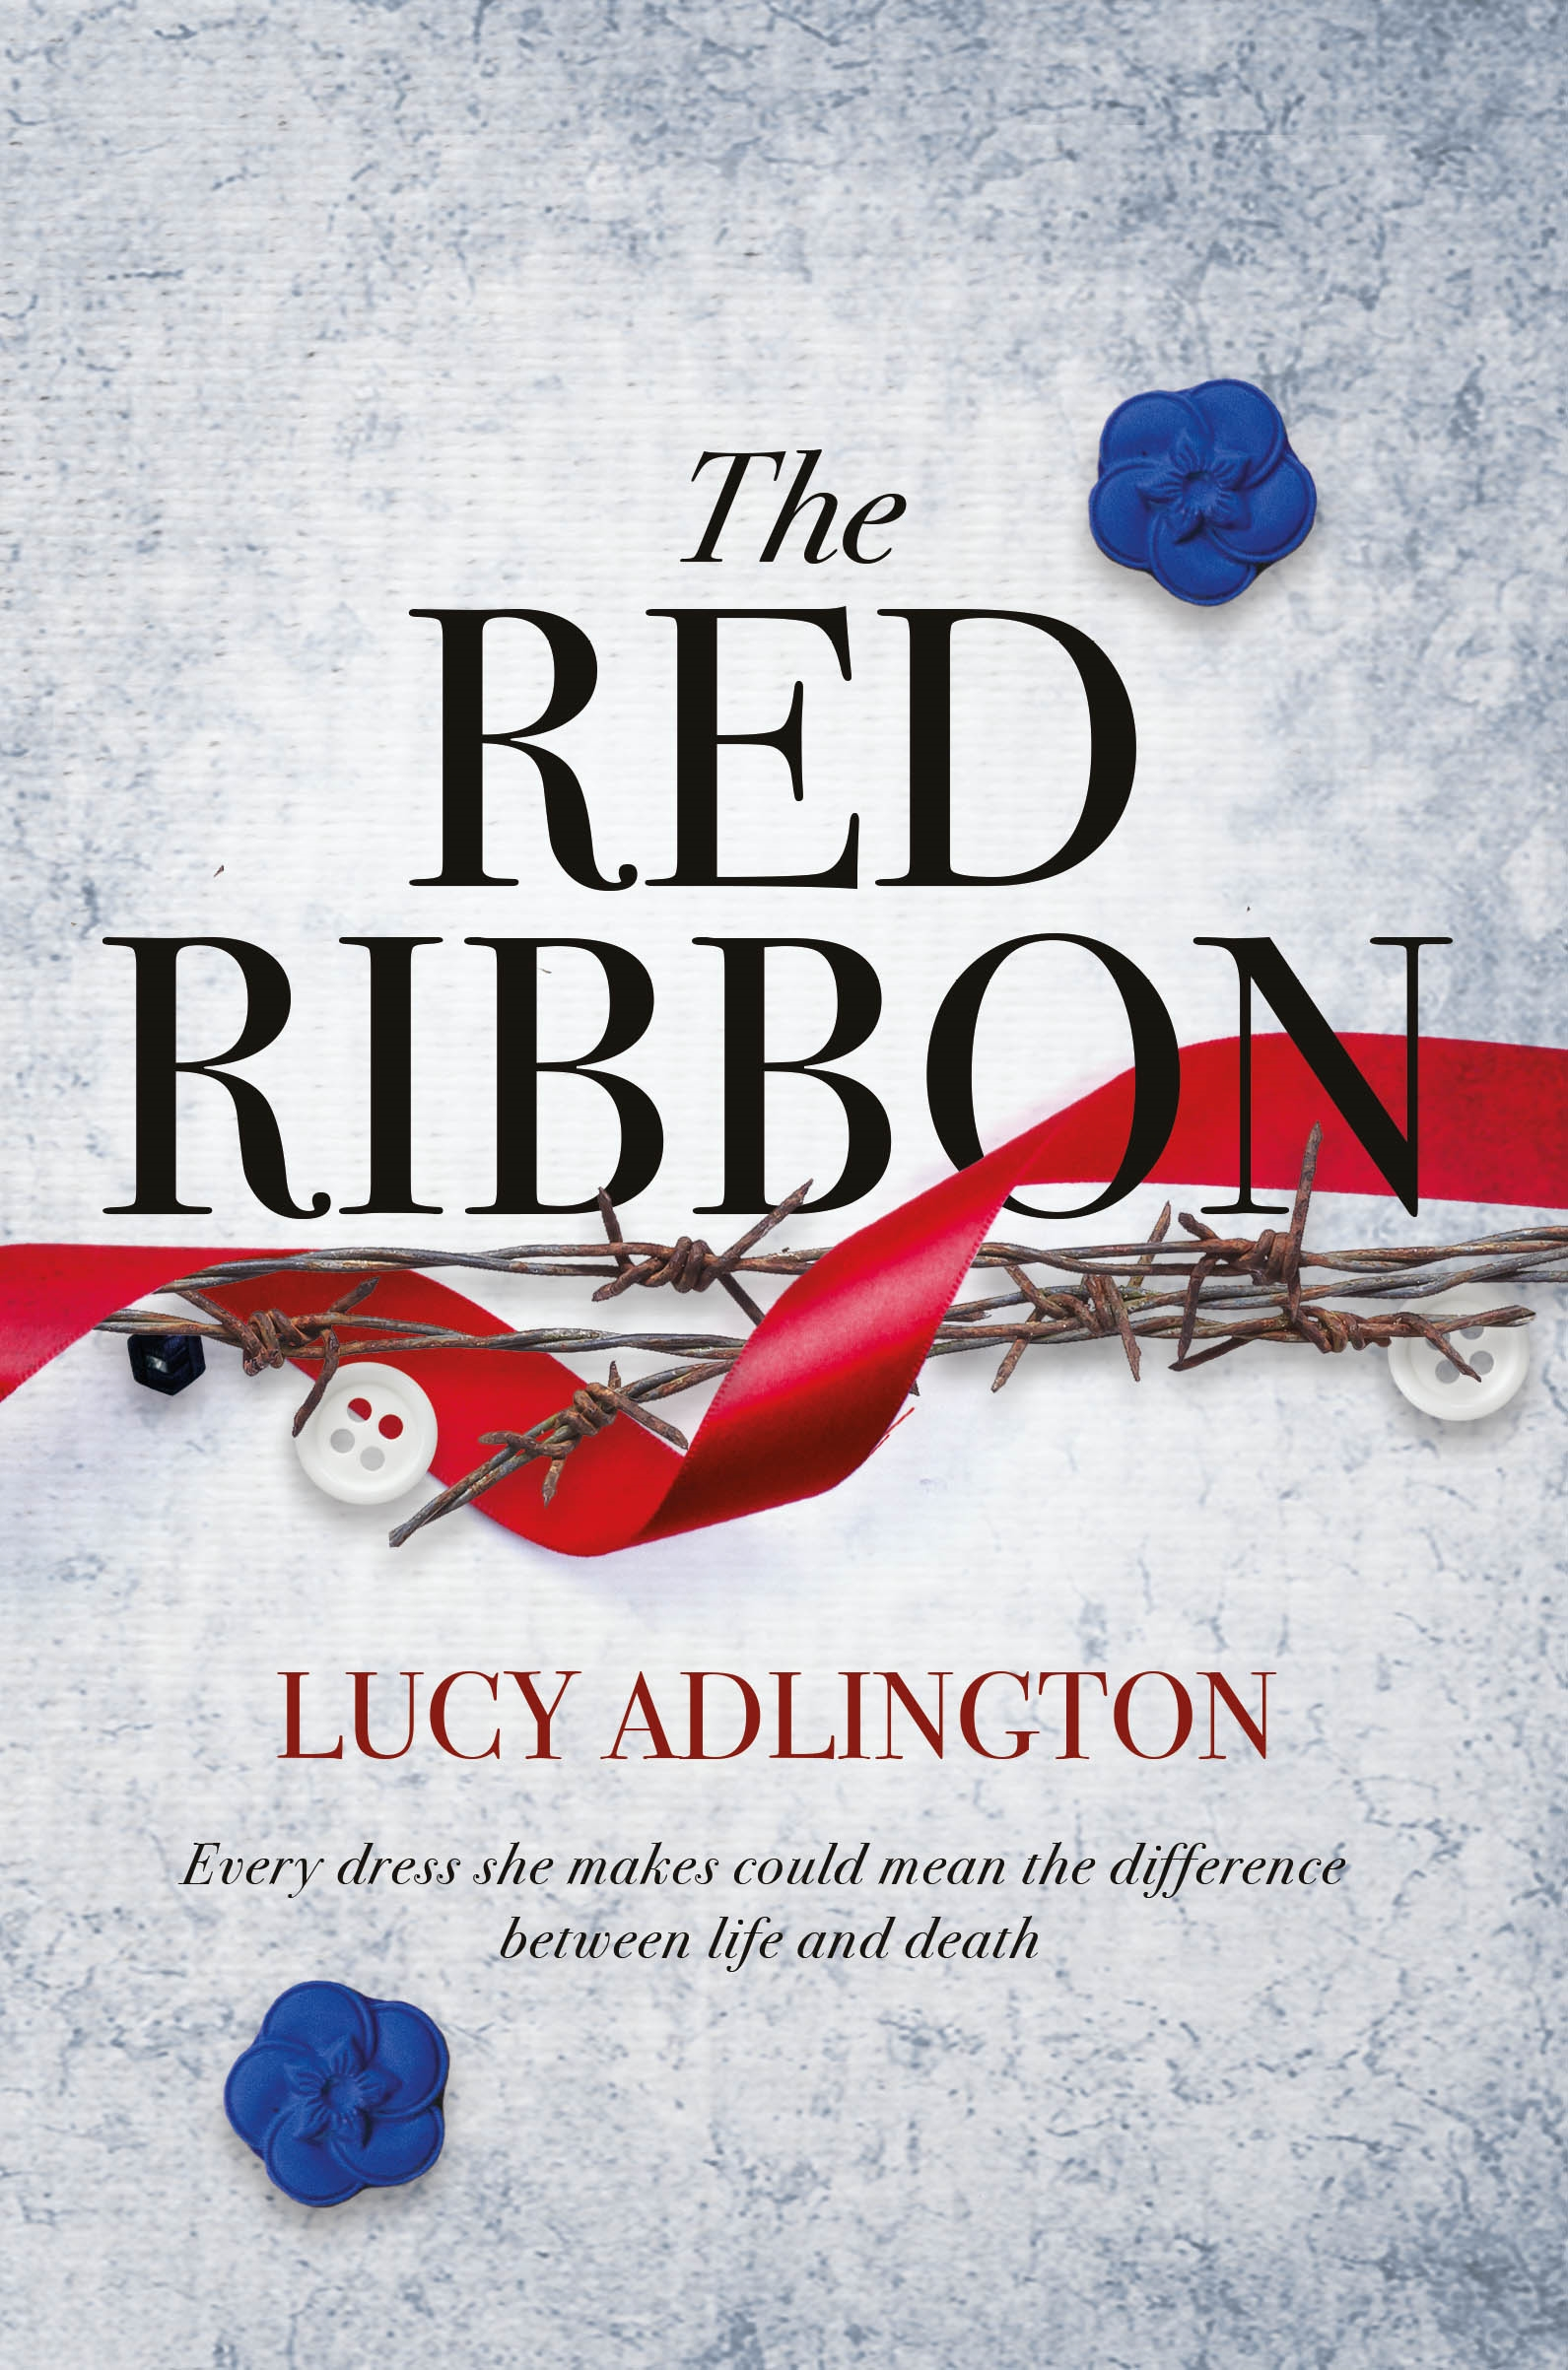 The Red Ribbon by Lucy Adlington